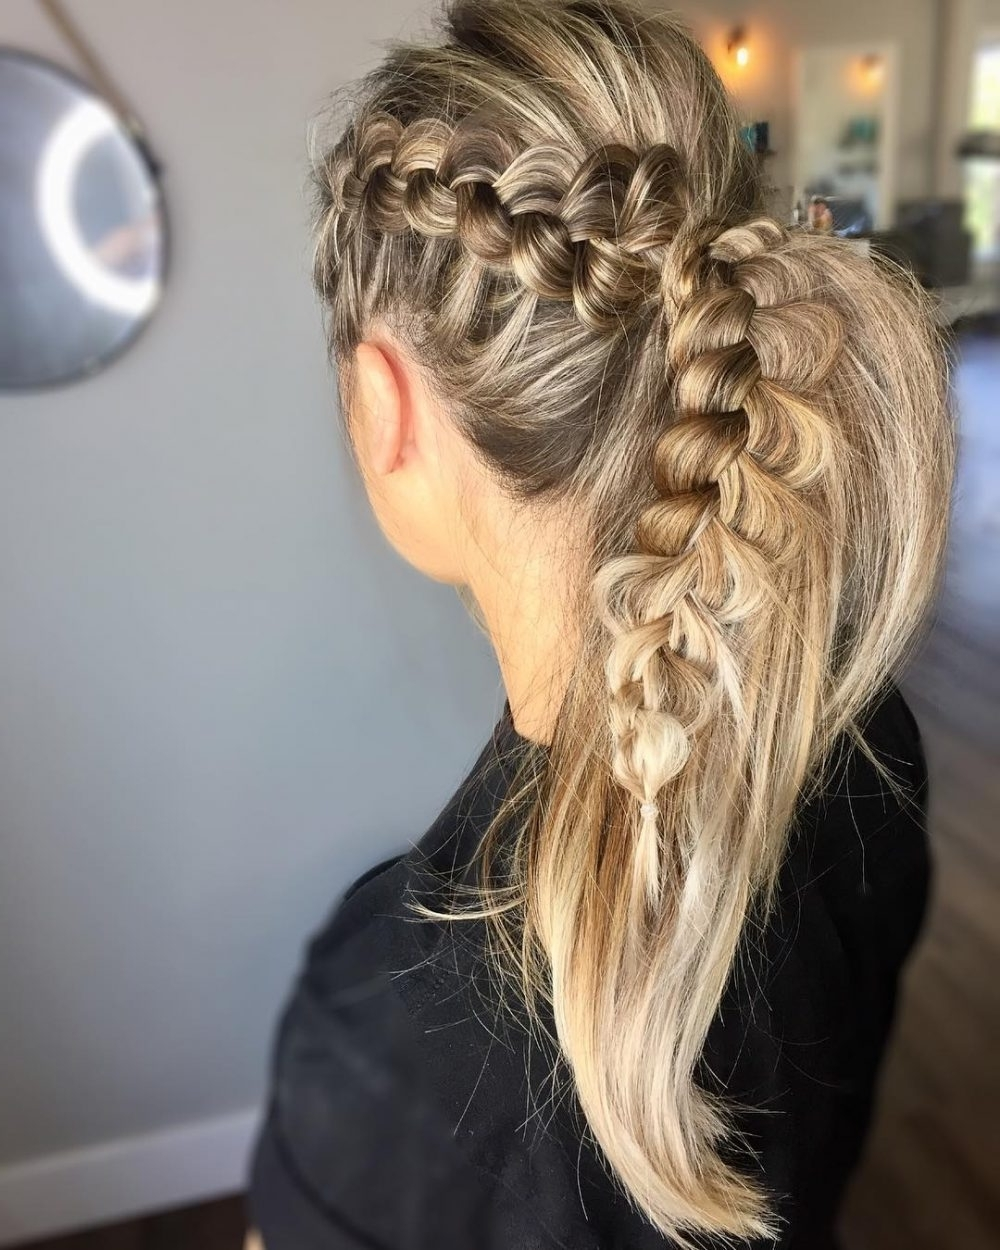 Well Liked Long Braided Ponytail Hairstyles With Bouffant Pertaining To 38 Ridiculously Cute Hairstyles For Long Hair (popular In 2018) (View 15 of 20)